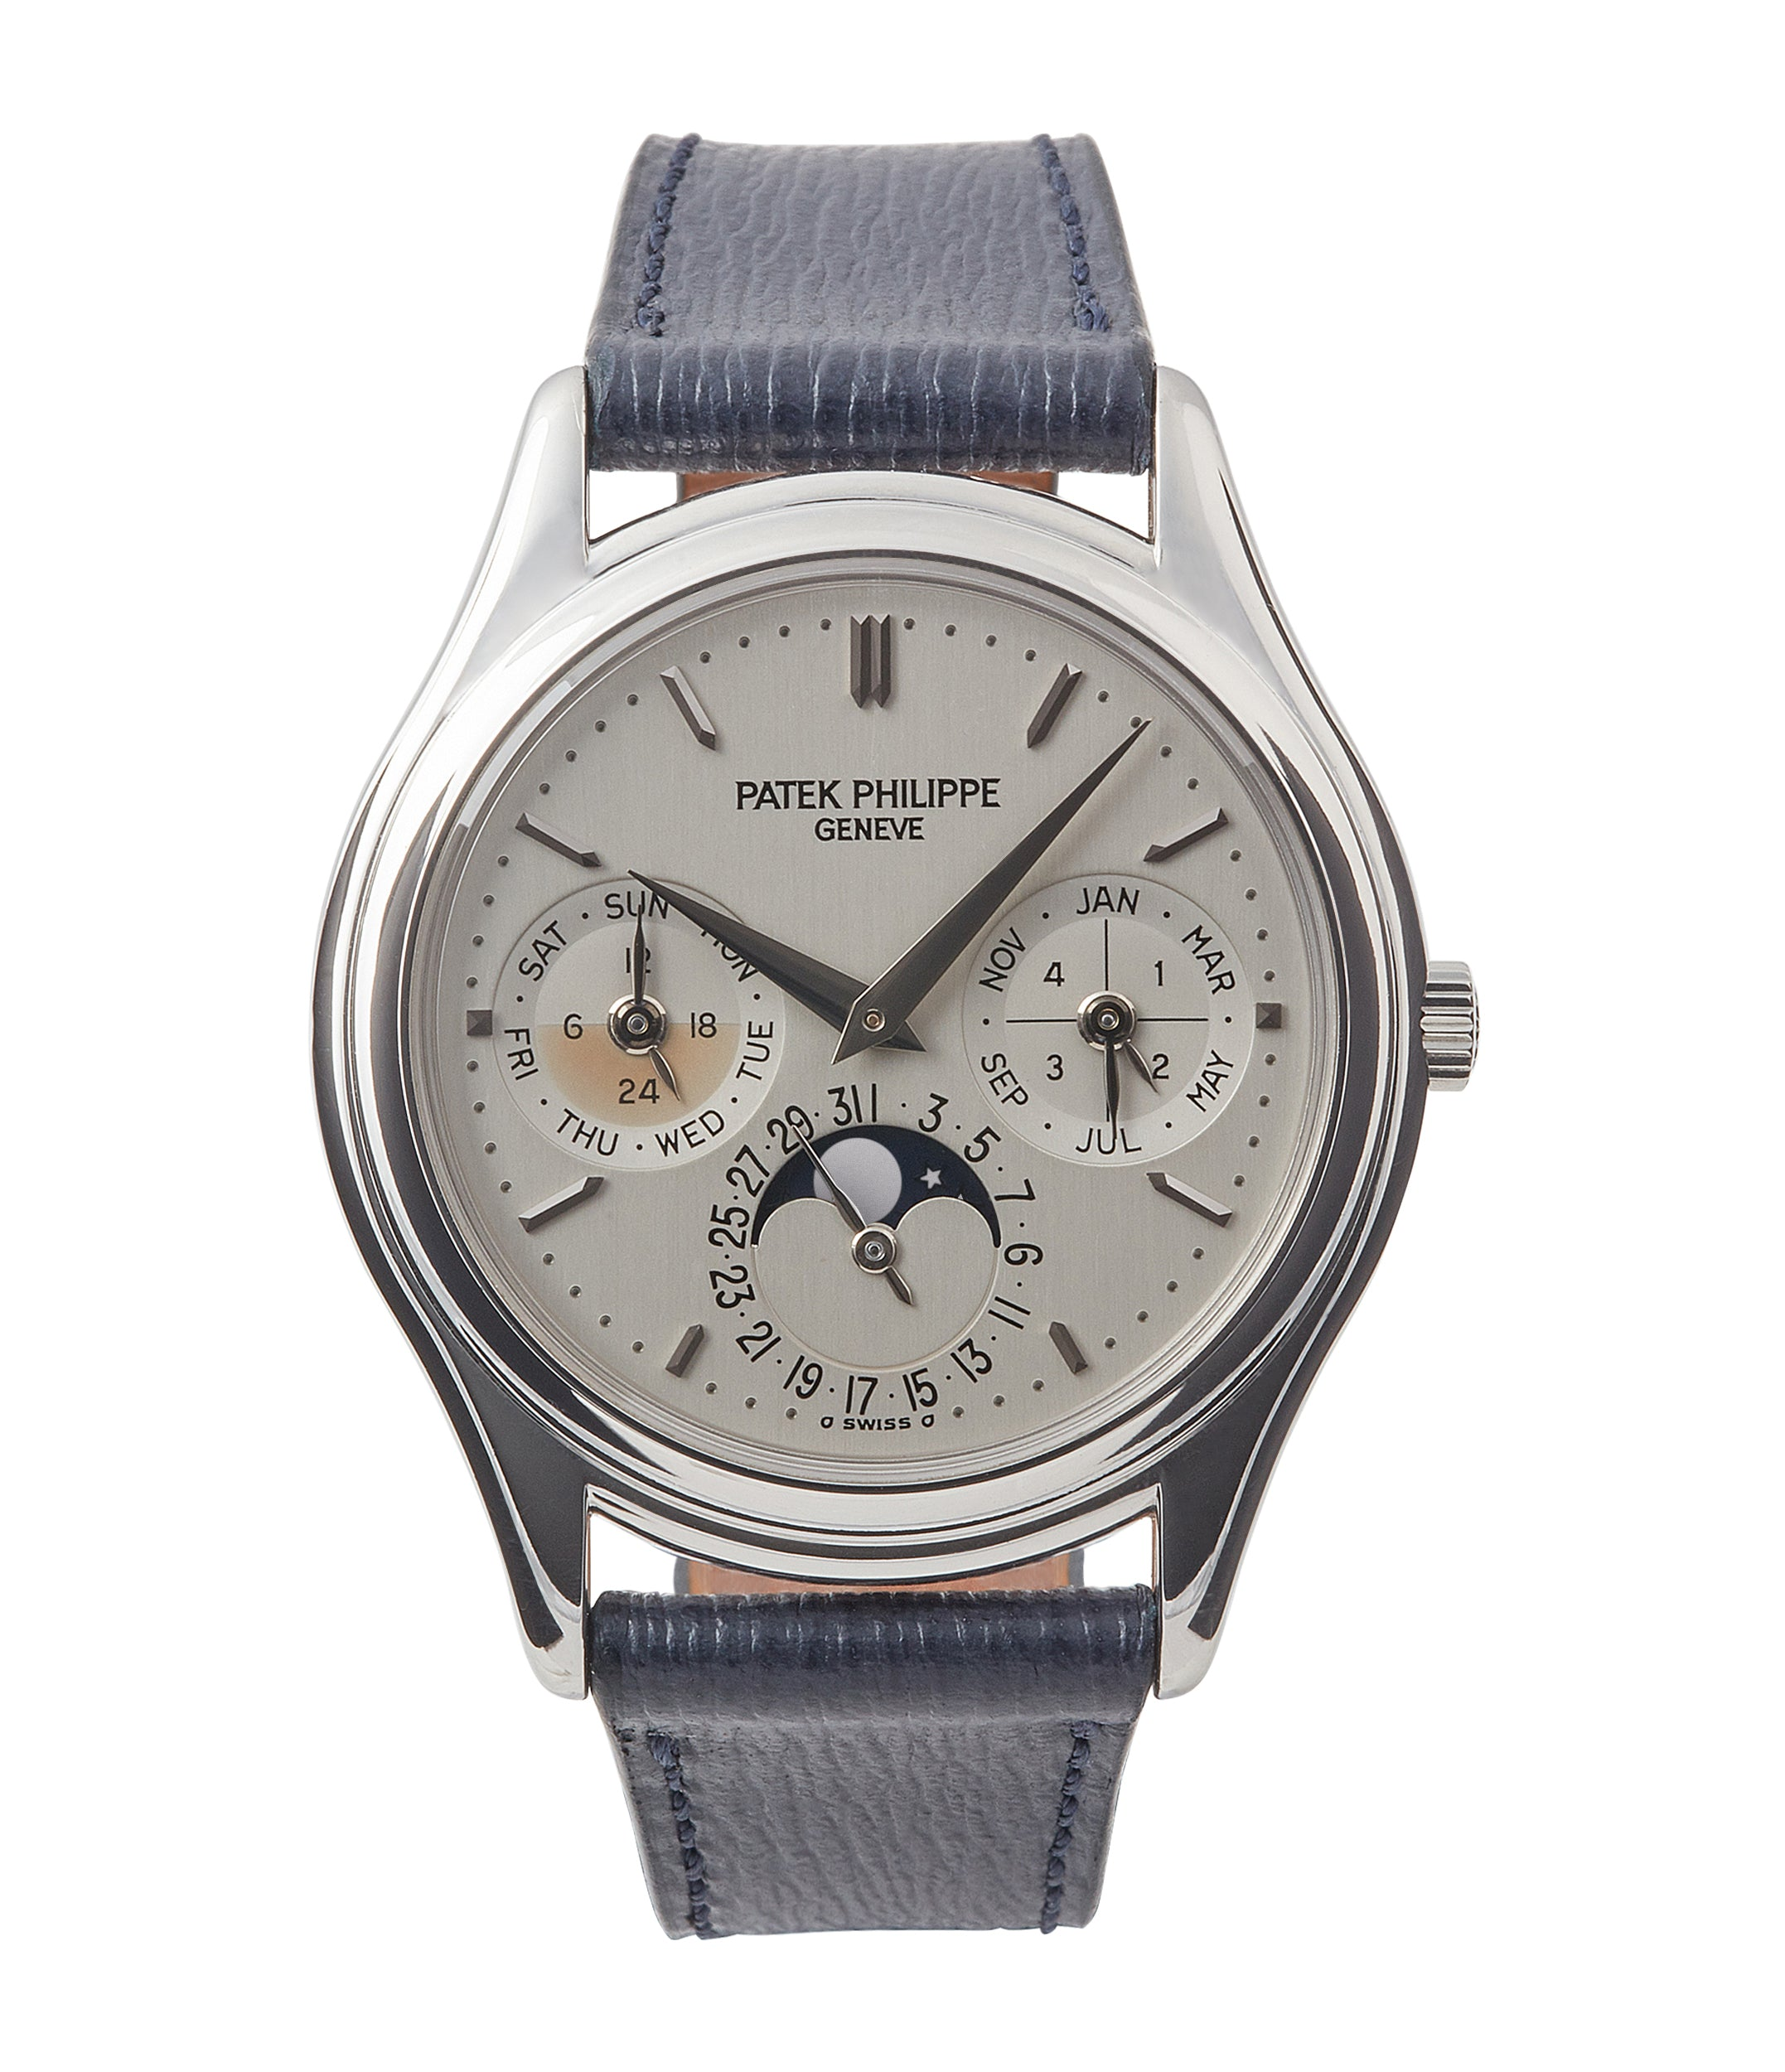 buy Patek Philippe 3940P platinum perpetual calendar rare dress watch full set for sale online at A Collected Man London UK specialist of rare watches